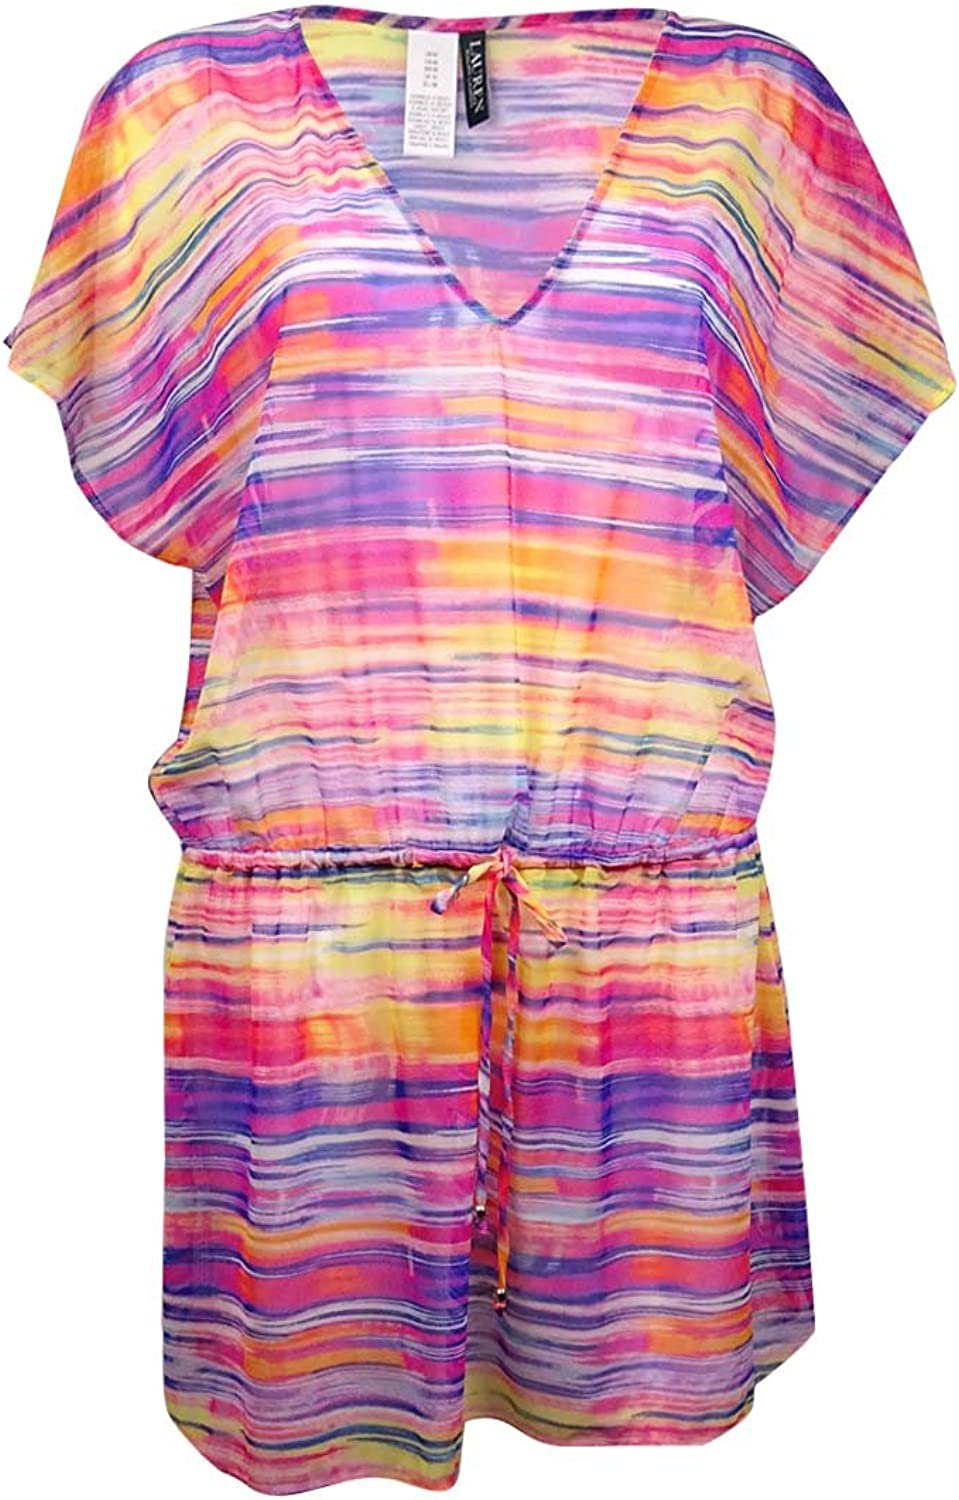 Lauren Ralph Lauren Womens Summer TieDye Poolside Tunic CoverUp